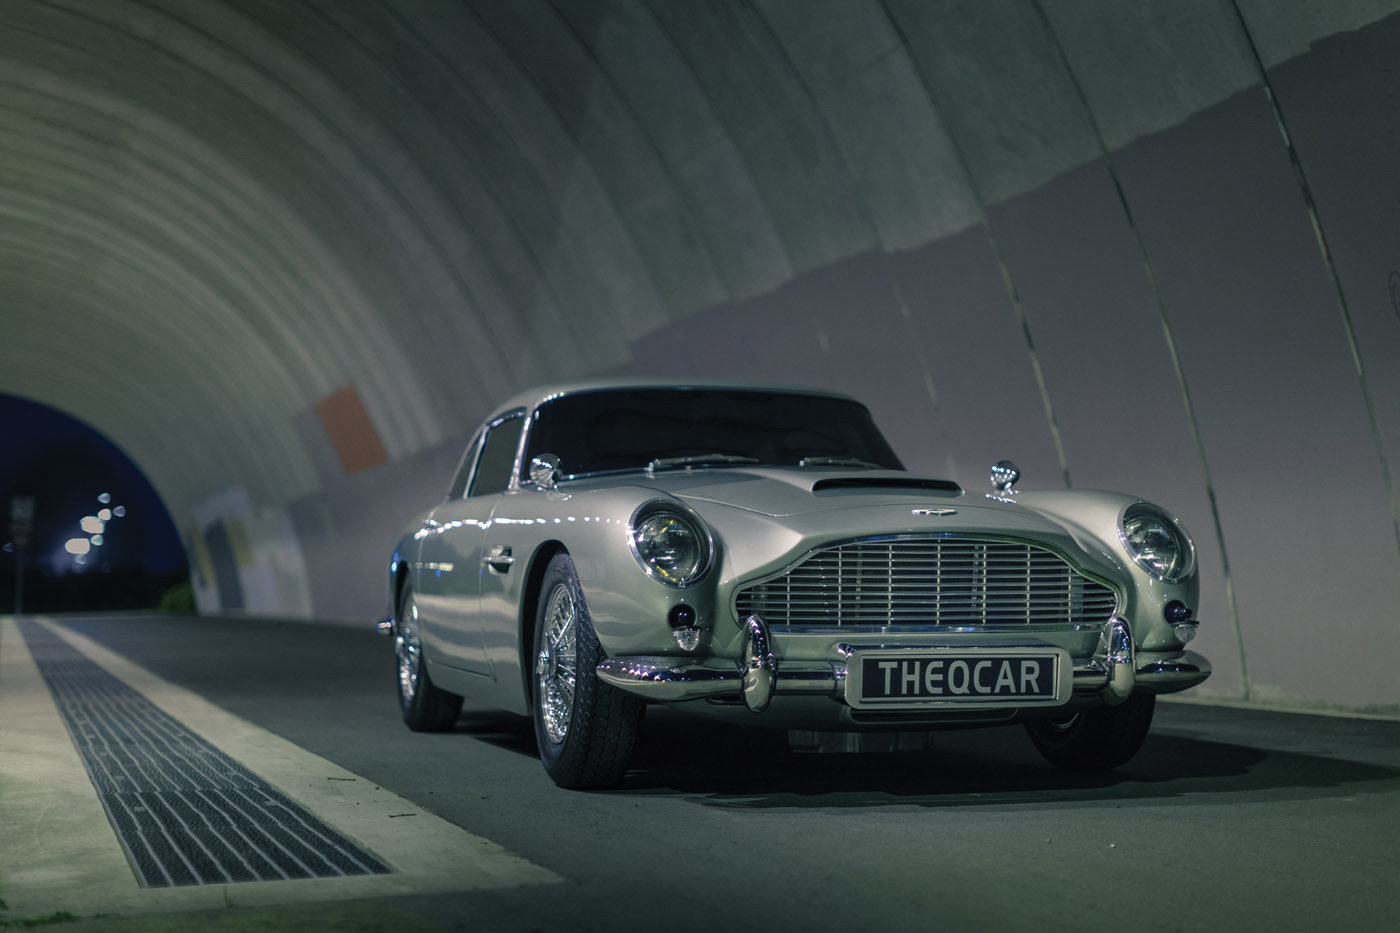 James Bond Aston Martin DB5 Replica